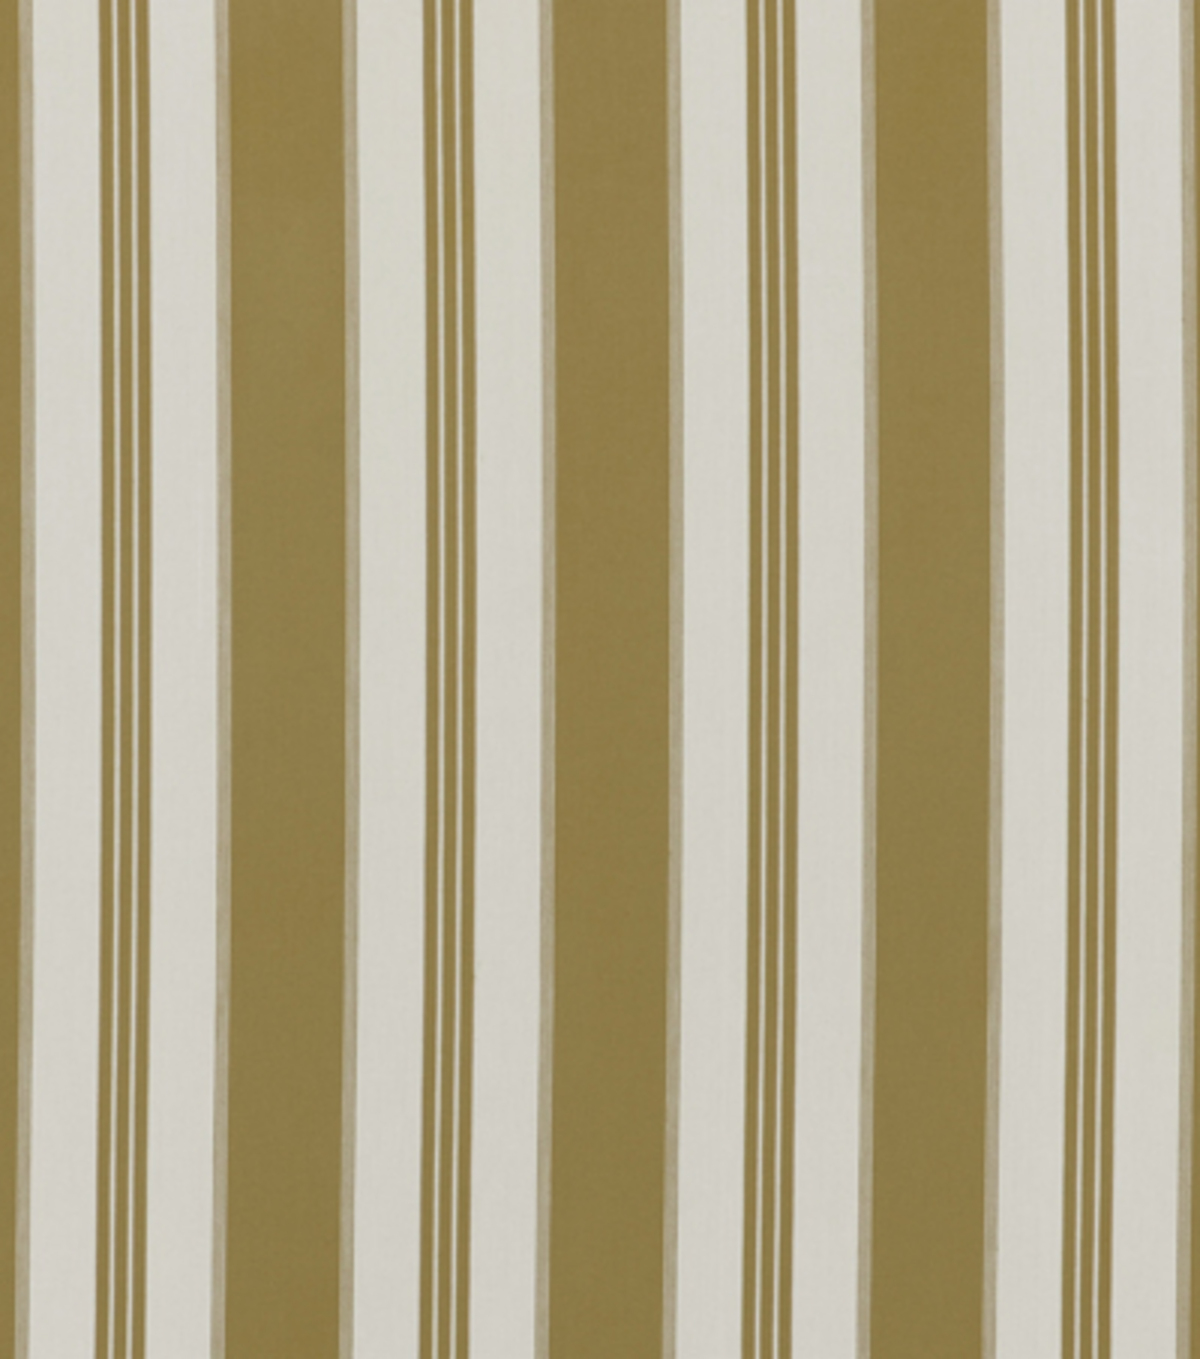 Home Decor 8\u0022x8\u0022 Fabric Swatch-Covington Trade Winds 166 Sand